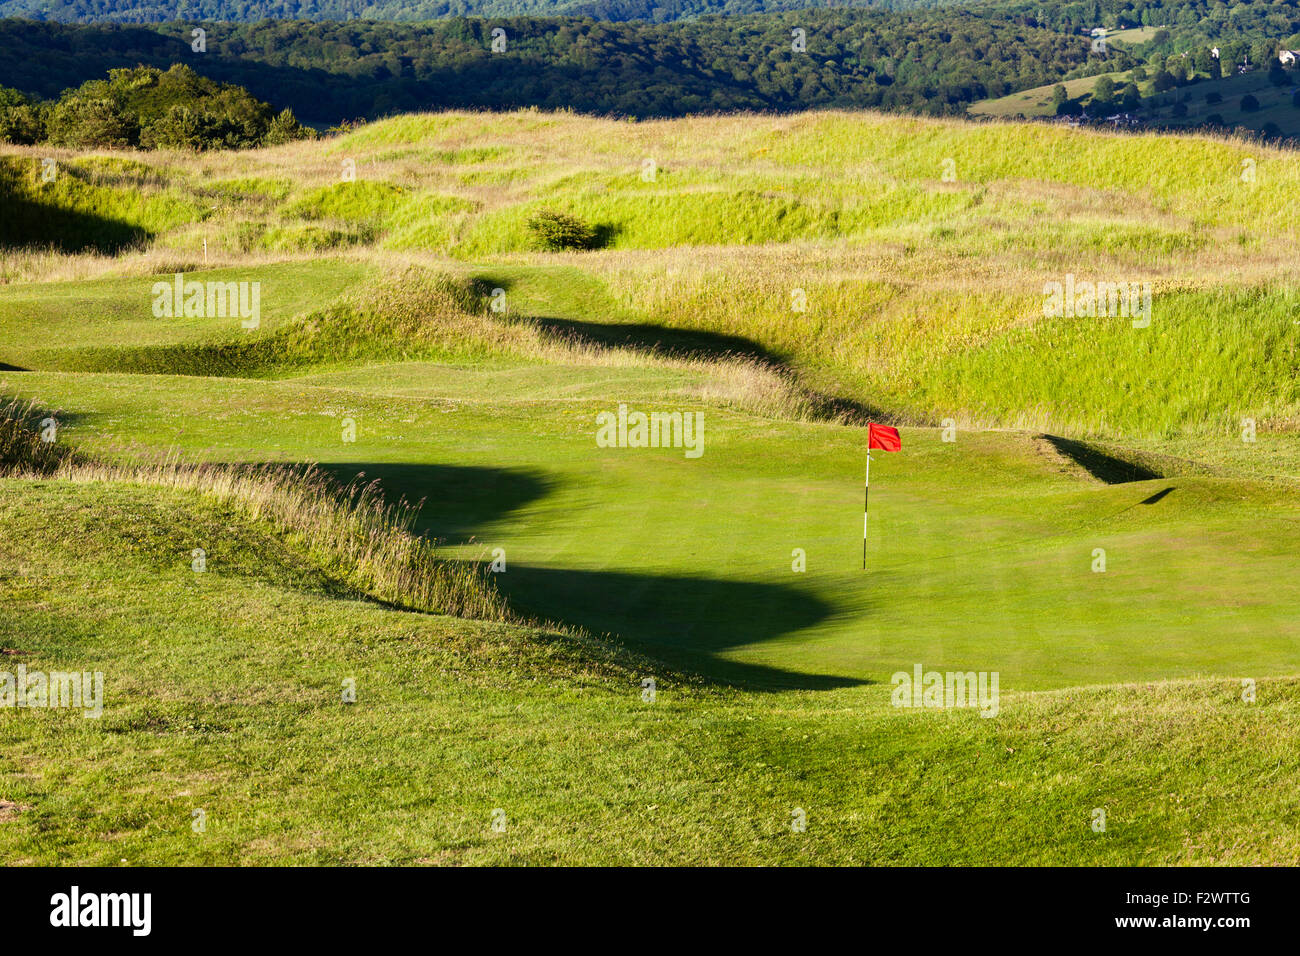 One of the greens on the golf course set among the defensive ramparts and ditches of the Iron Age hillfort on Painswick - Stock Image